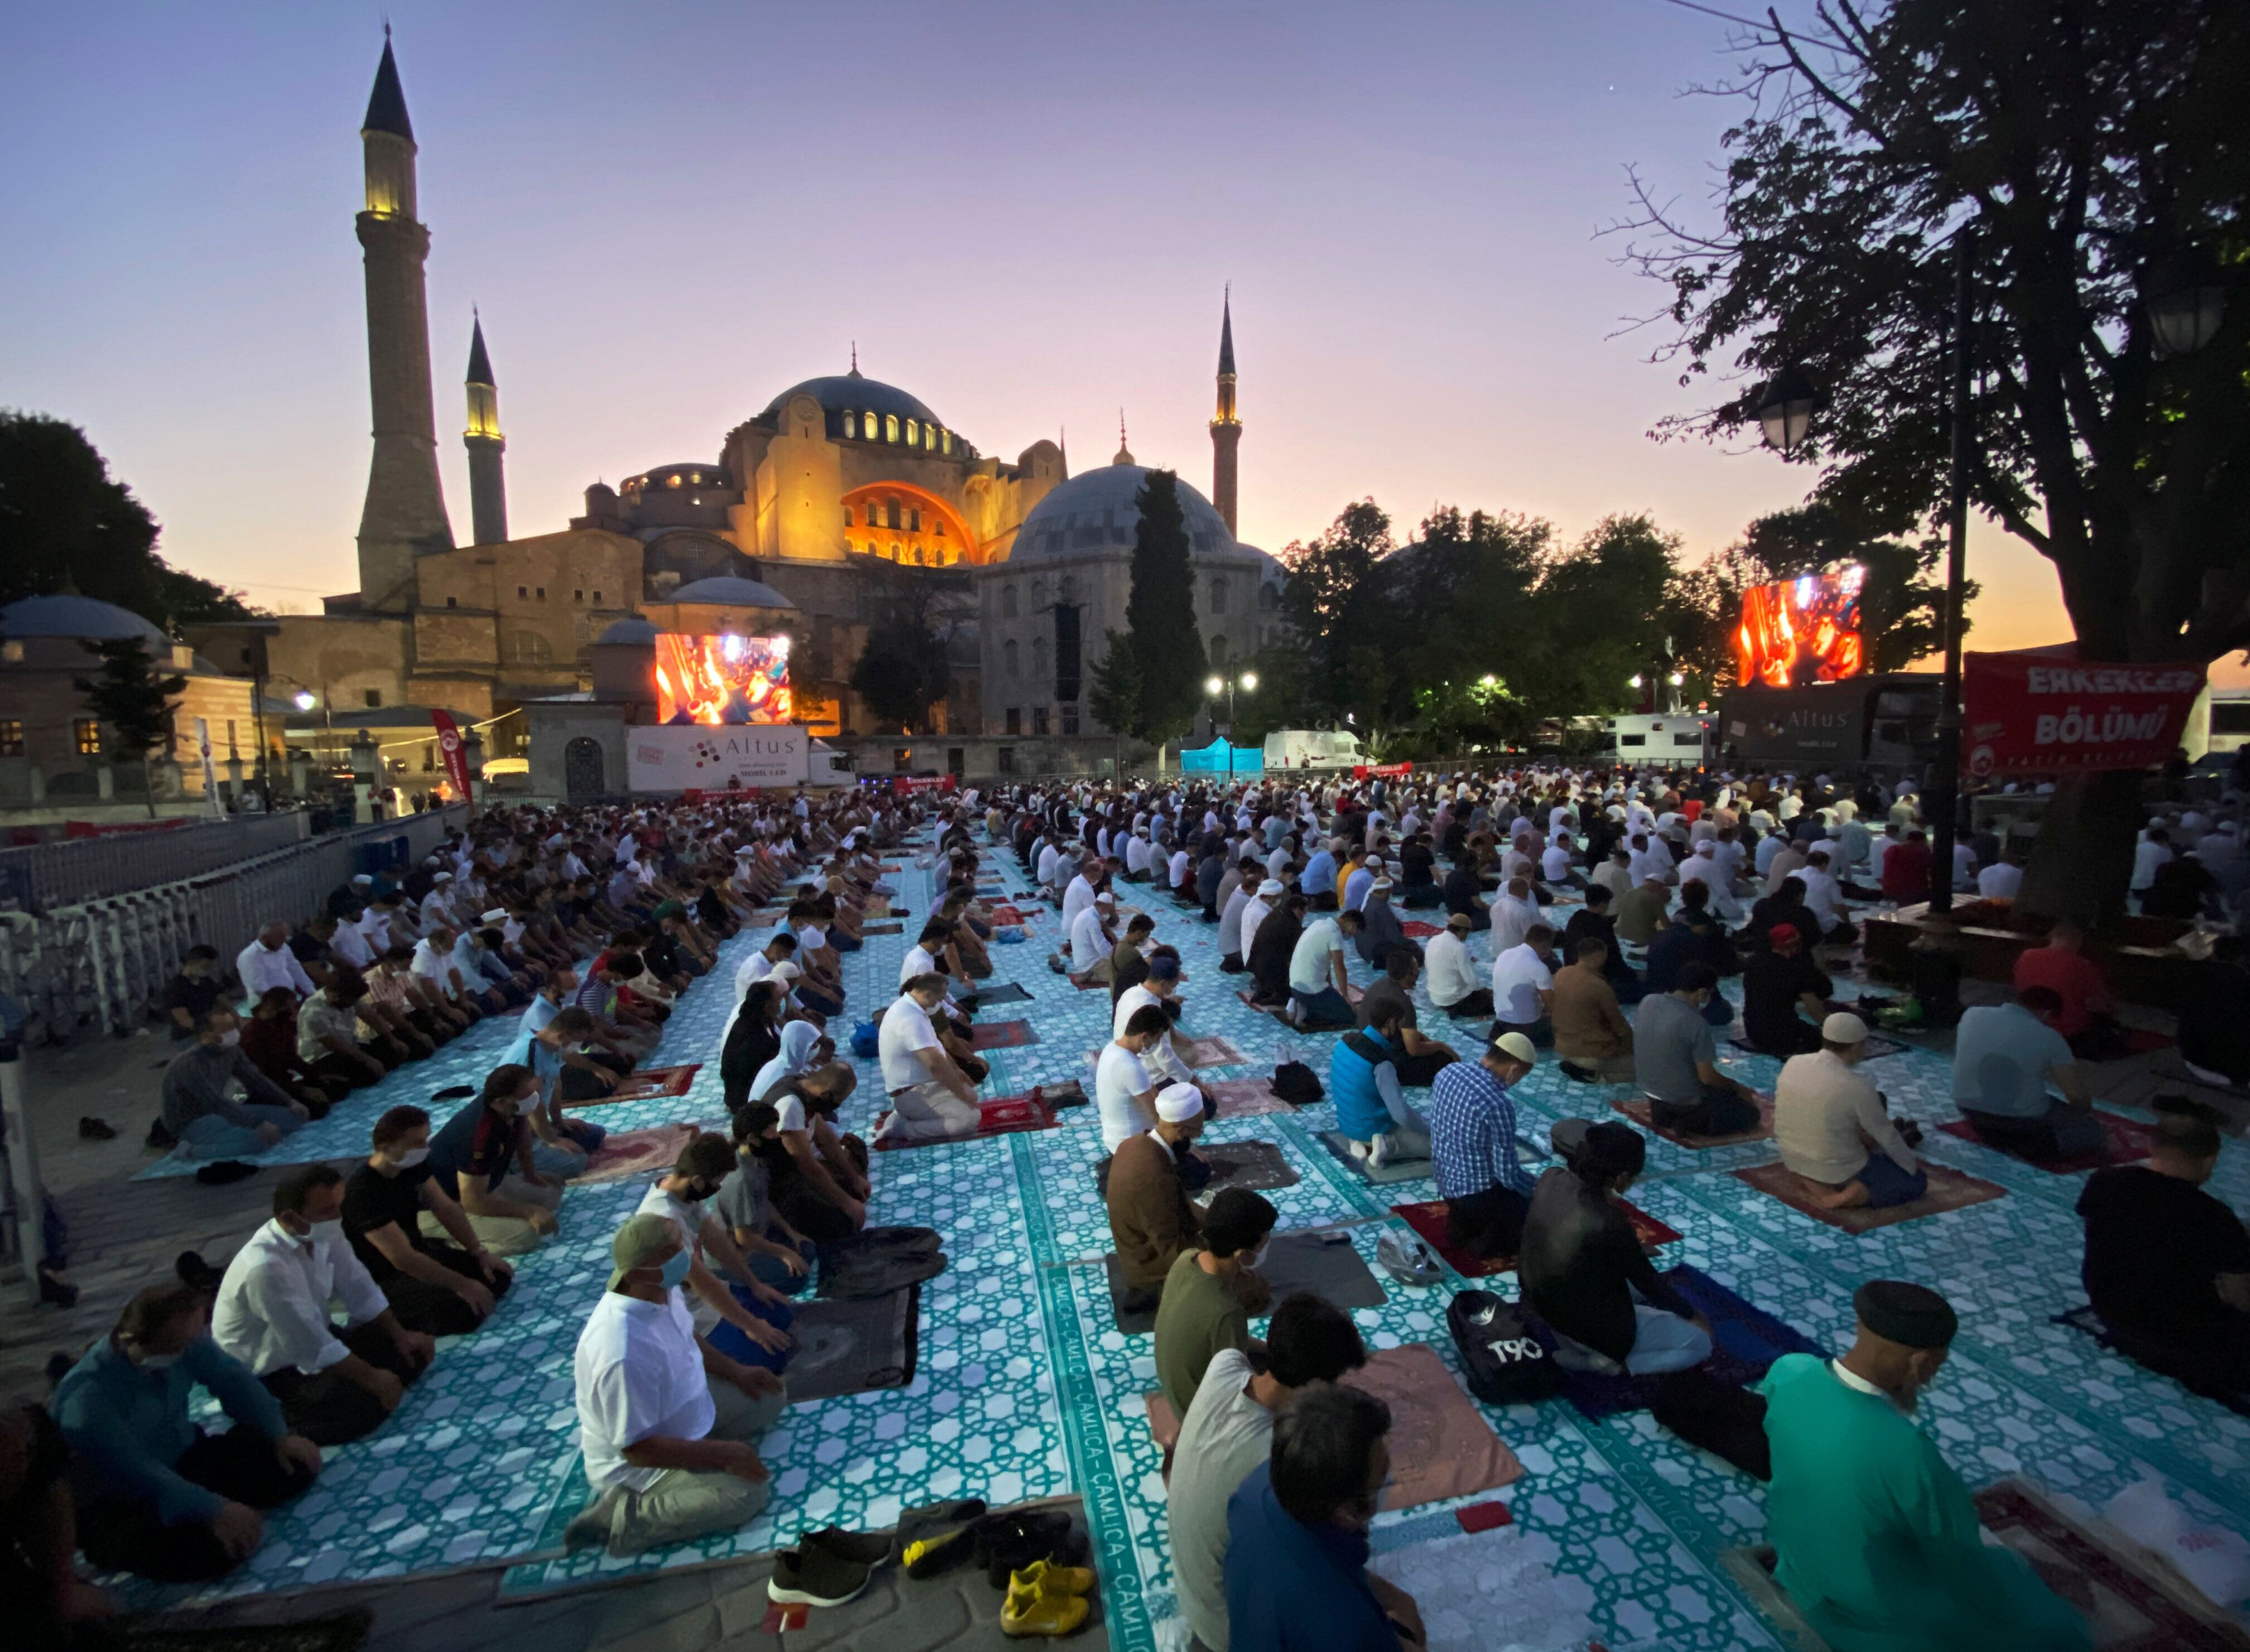 Muslims offer prayers during Eid al-Adha near the Hagia Sophia, recently converted back to a mosque, in Istanbul on July 31,